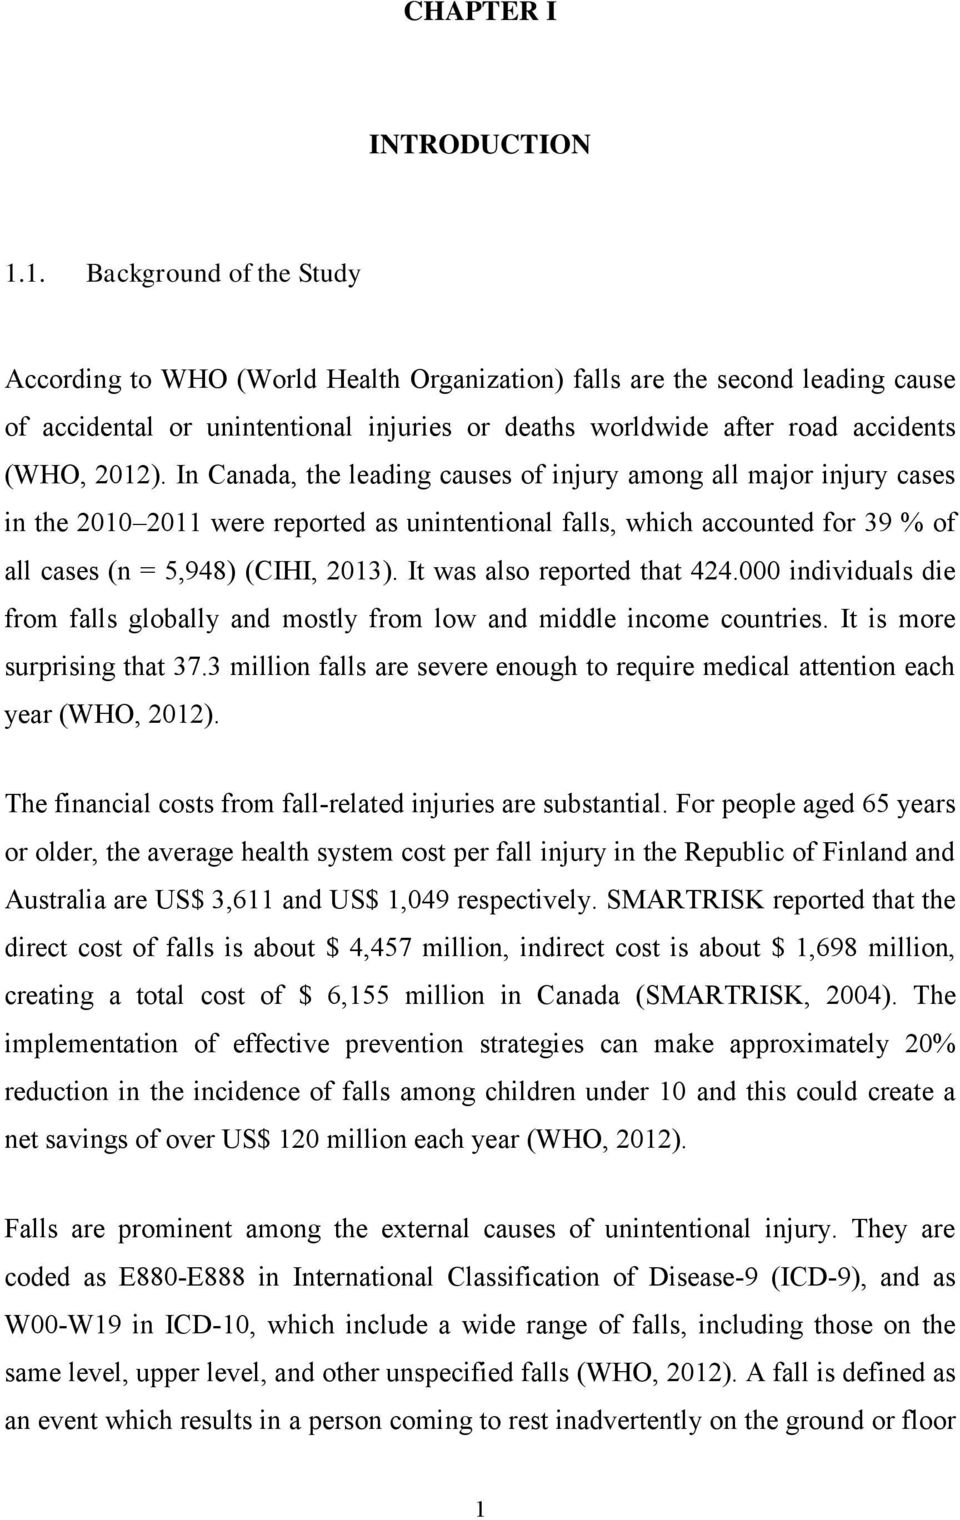 In Canada, the leading causes of injury among all major injury cases in the 2010 2011 were reported as unintentional falls, which accounted for 39 % of all cases (n = 5,948) (CIHI, 2013).